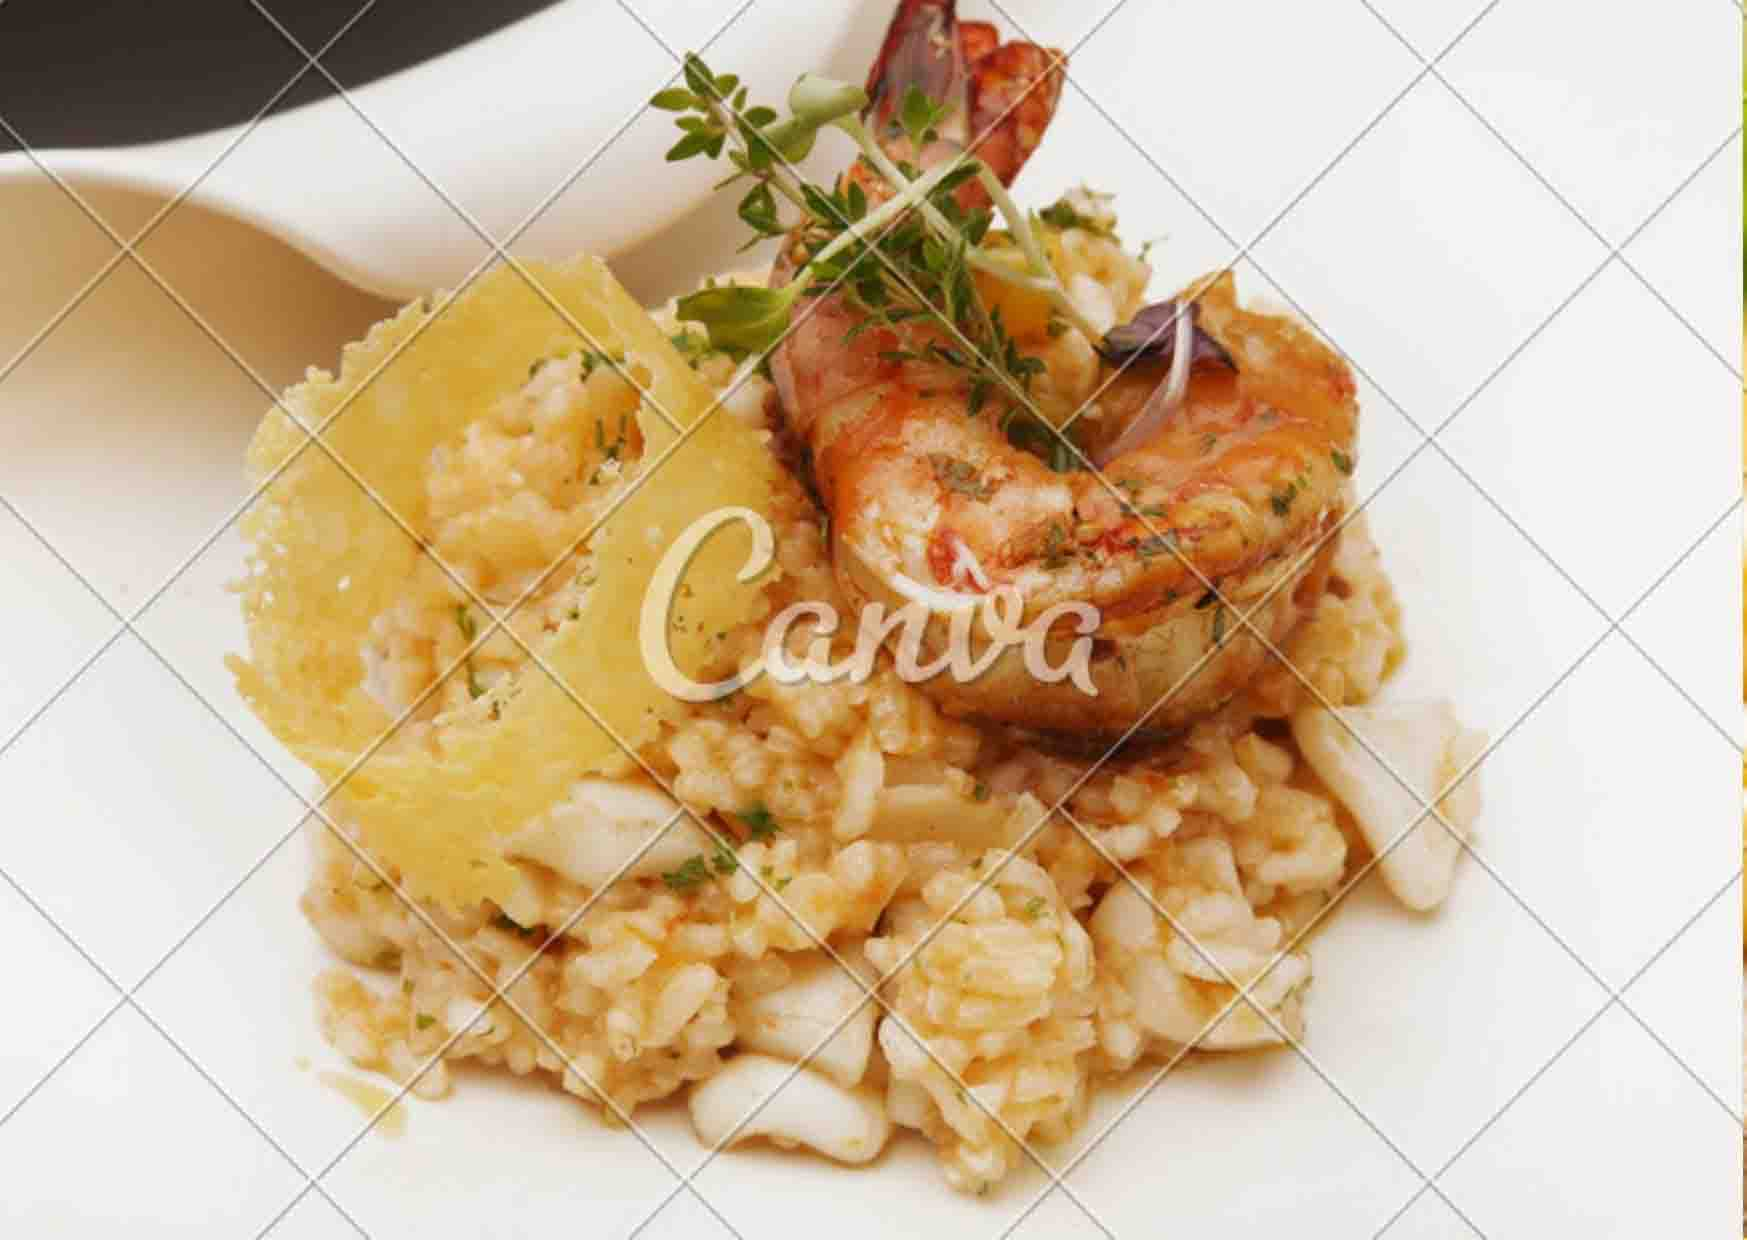 genoese seafood risotto recipe